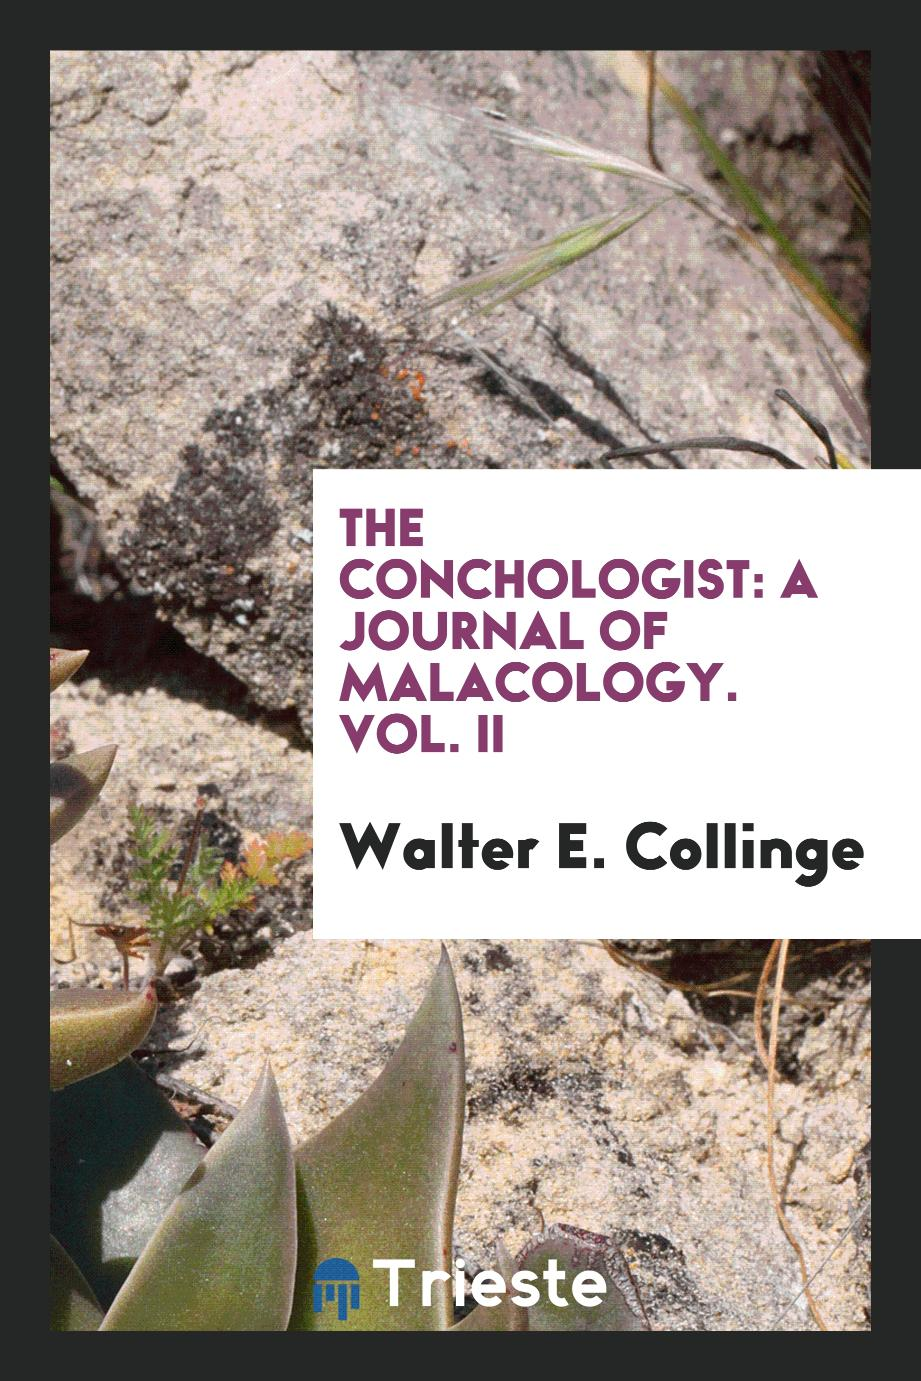 The Conchologist: A Journal of Malacology. Vol. II